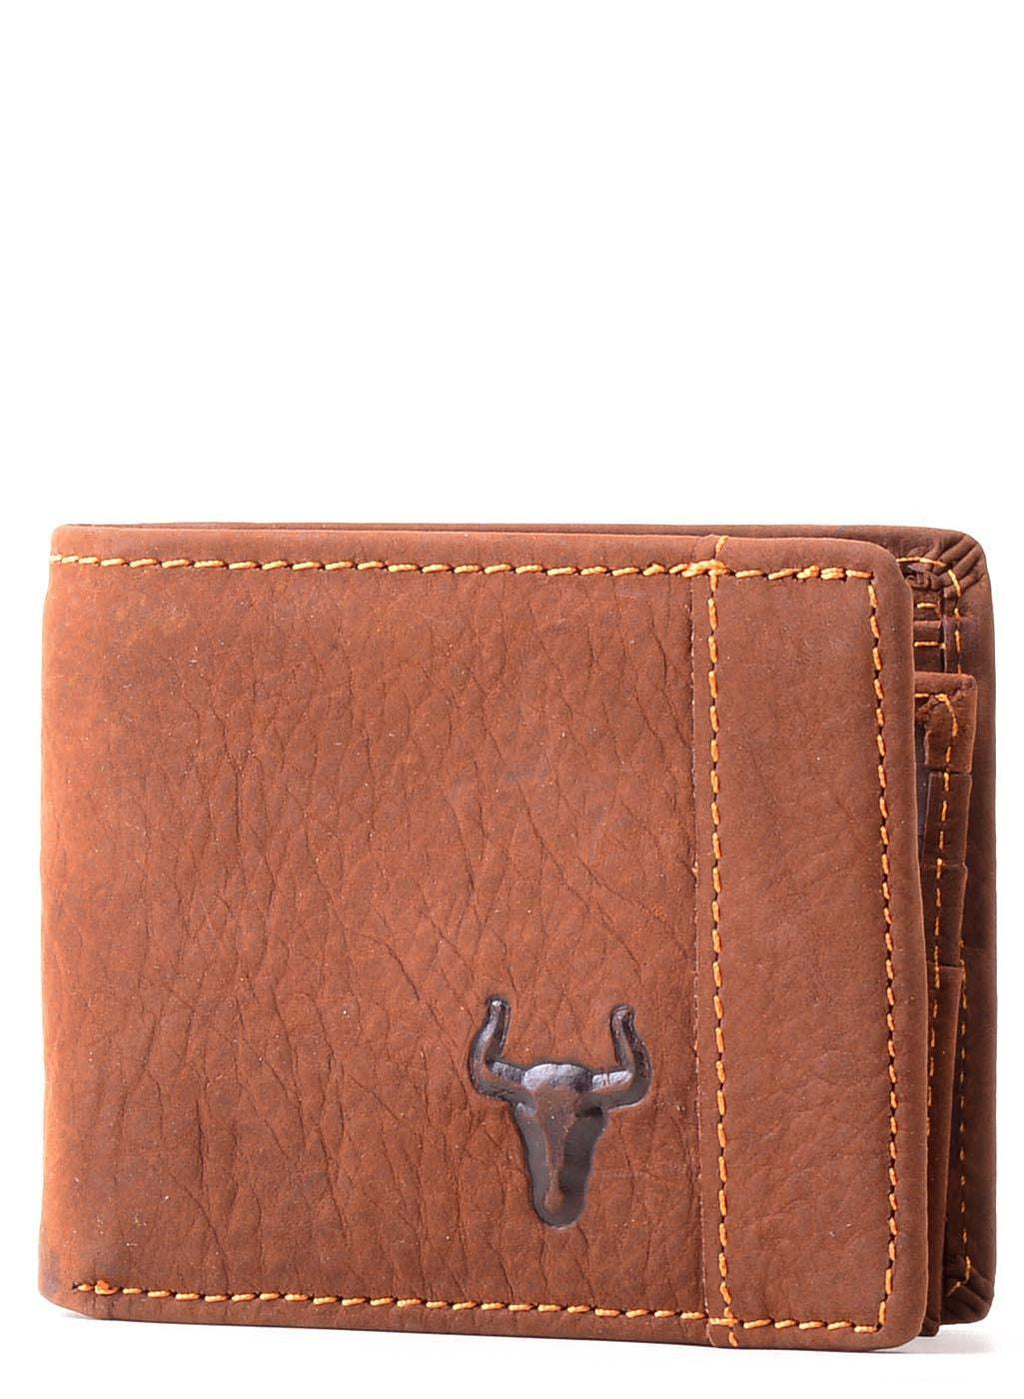 EthniCache Wallet Regal Handmade Pure Leather Wallet